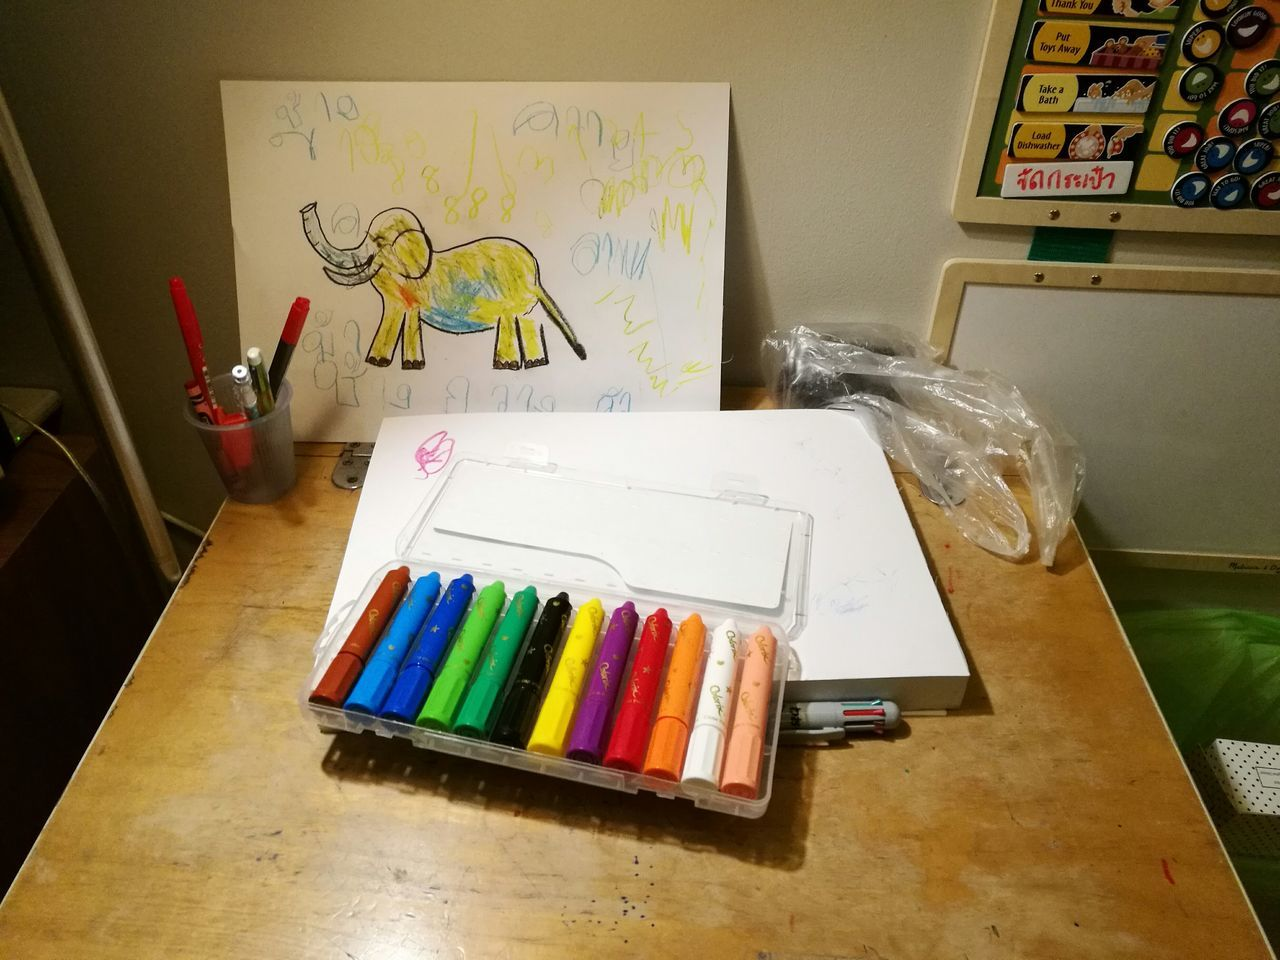 Indoors  Multi Colored Drawing - Art Product No People Colored Pencil Studio Sketch Pad Day Drawing Color Picture Kid Boy Fun Table Working Space